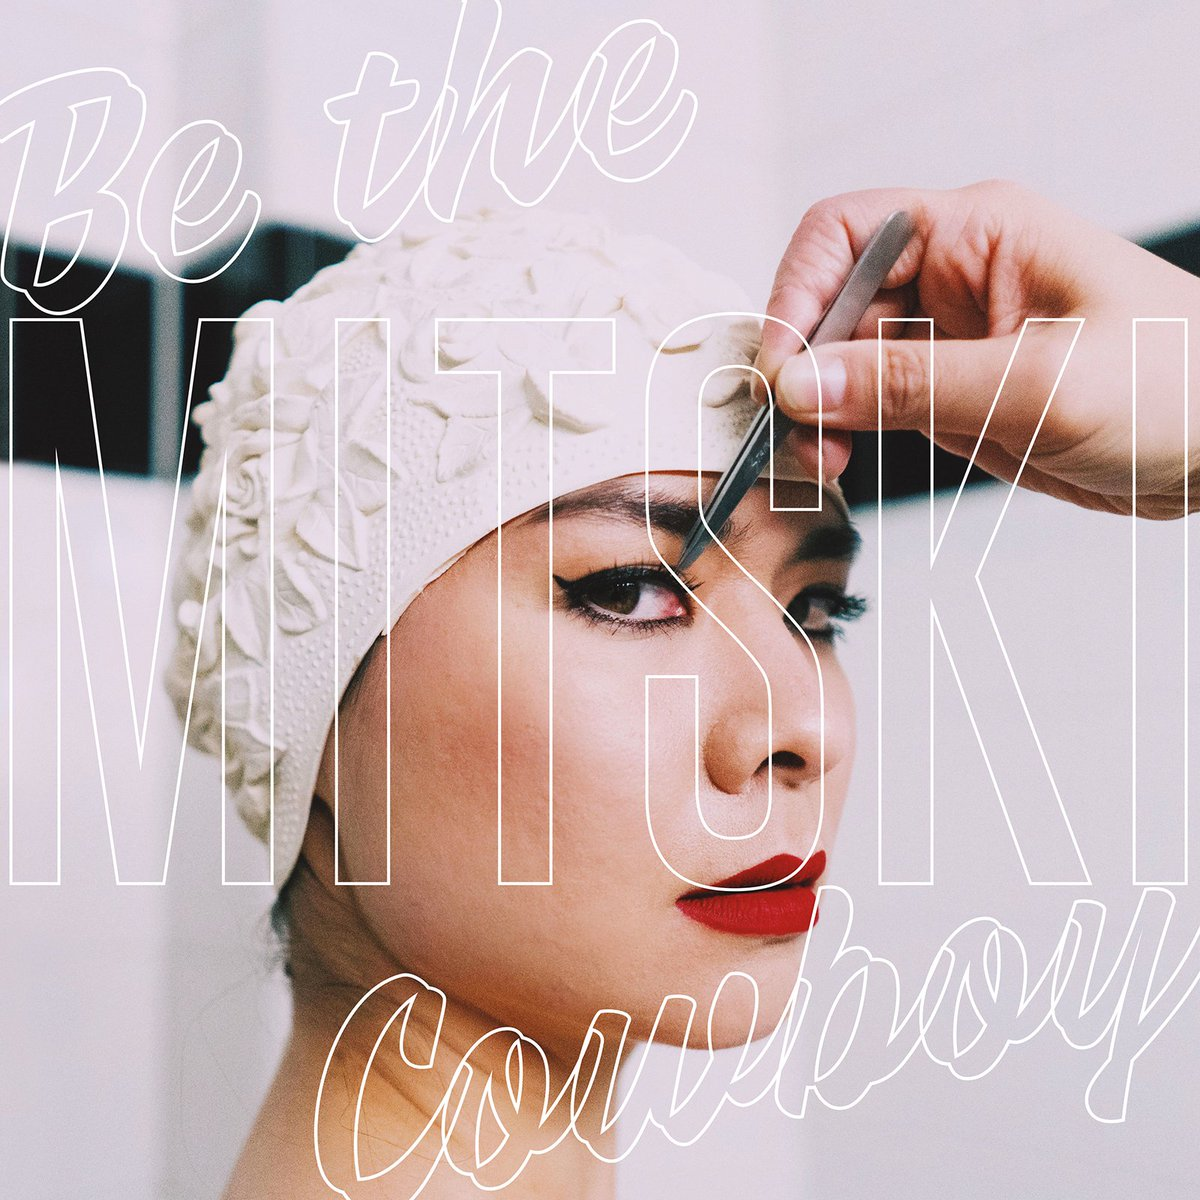 Mitski has made college radio history.   Eight weeks at #1.    Be The Cowboy is the longest running #1 album EVER on NACC&#39;s Top 200 Chart  <br>http://pic.twitter.com/Mg6bnve1D3